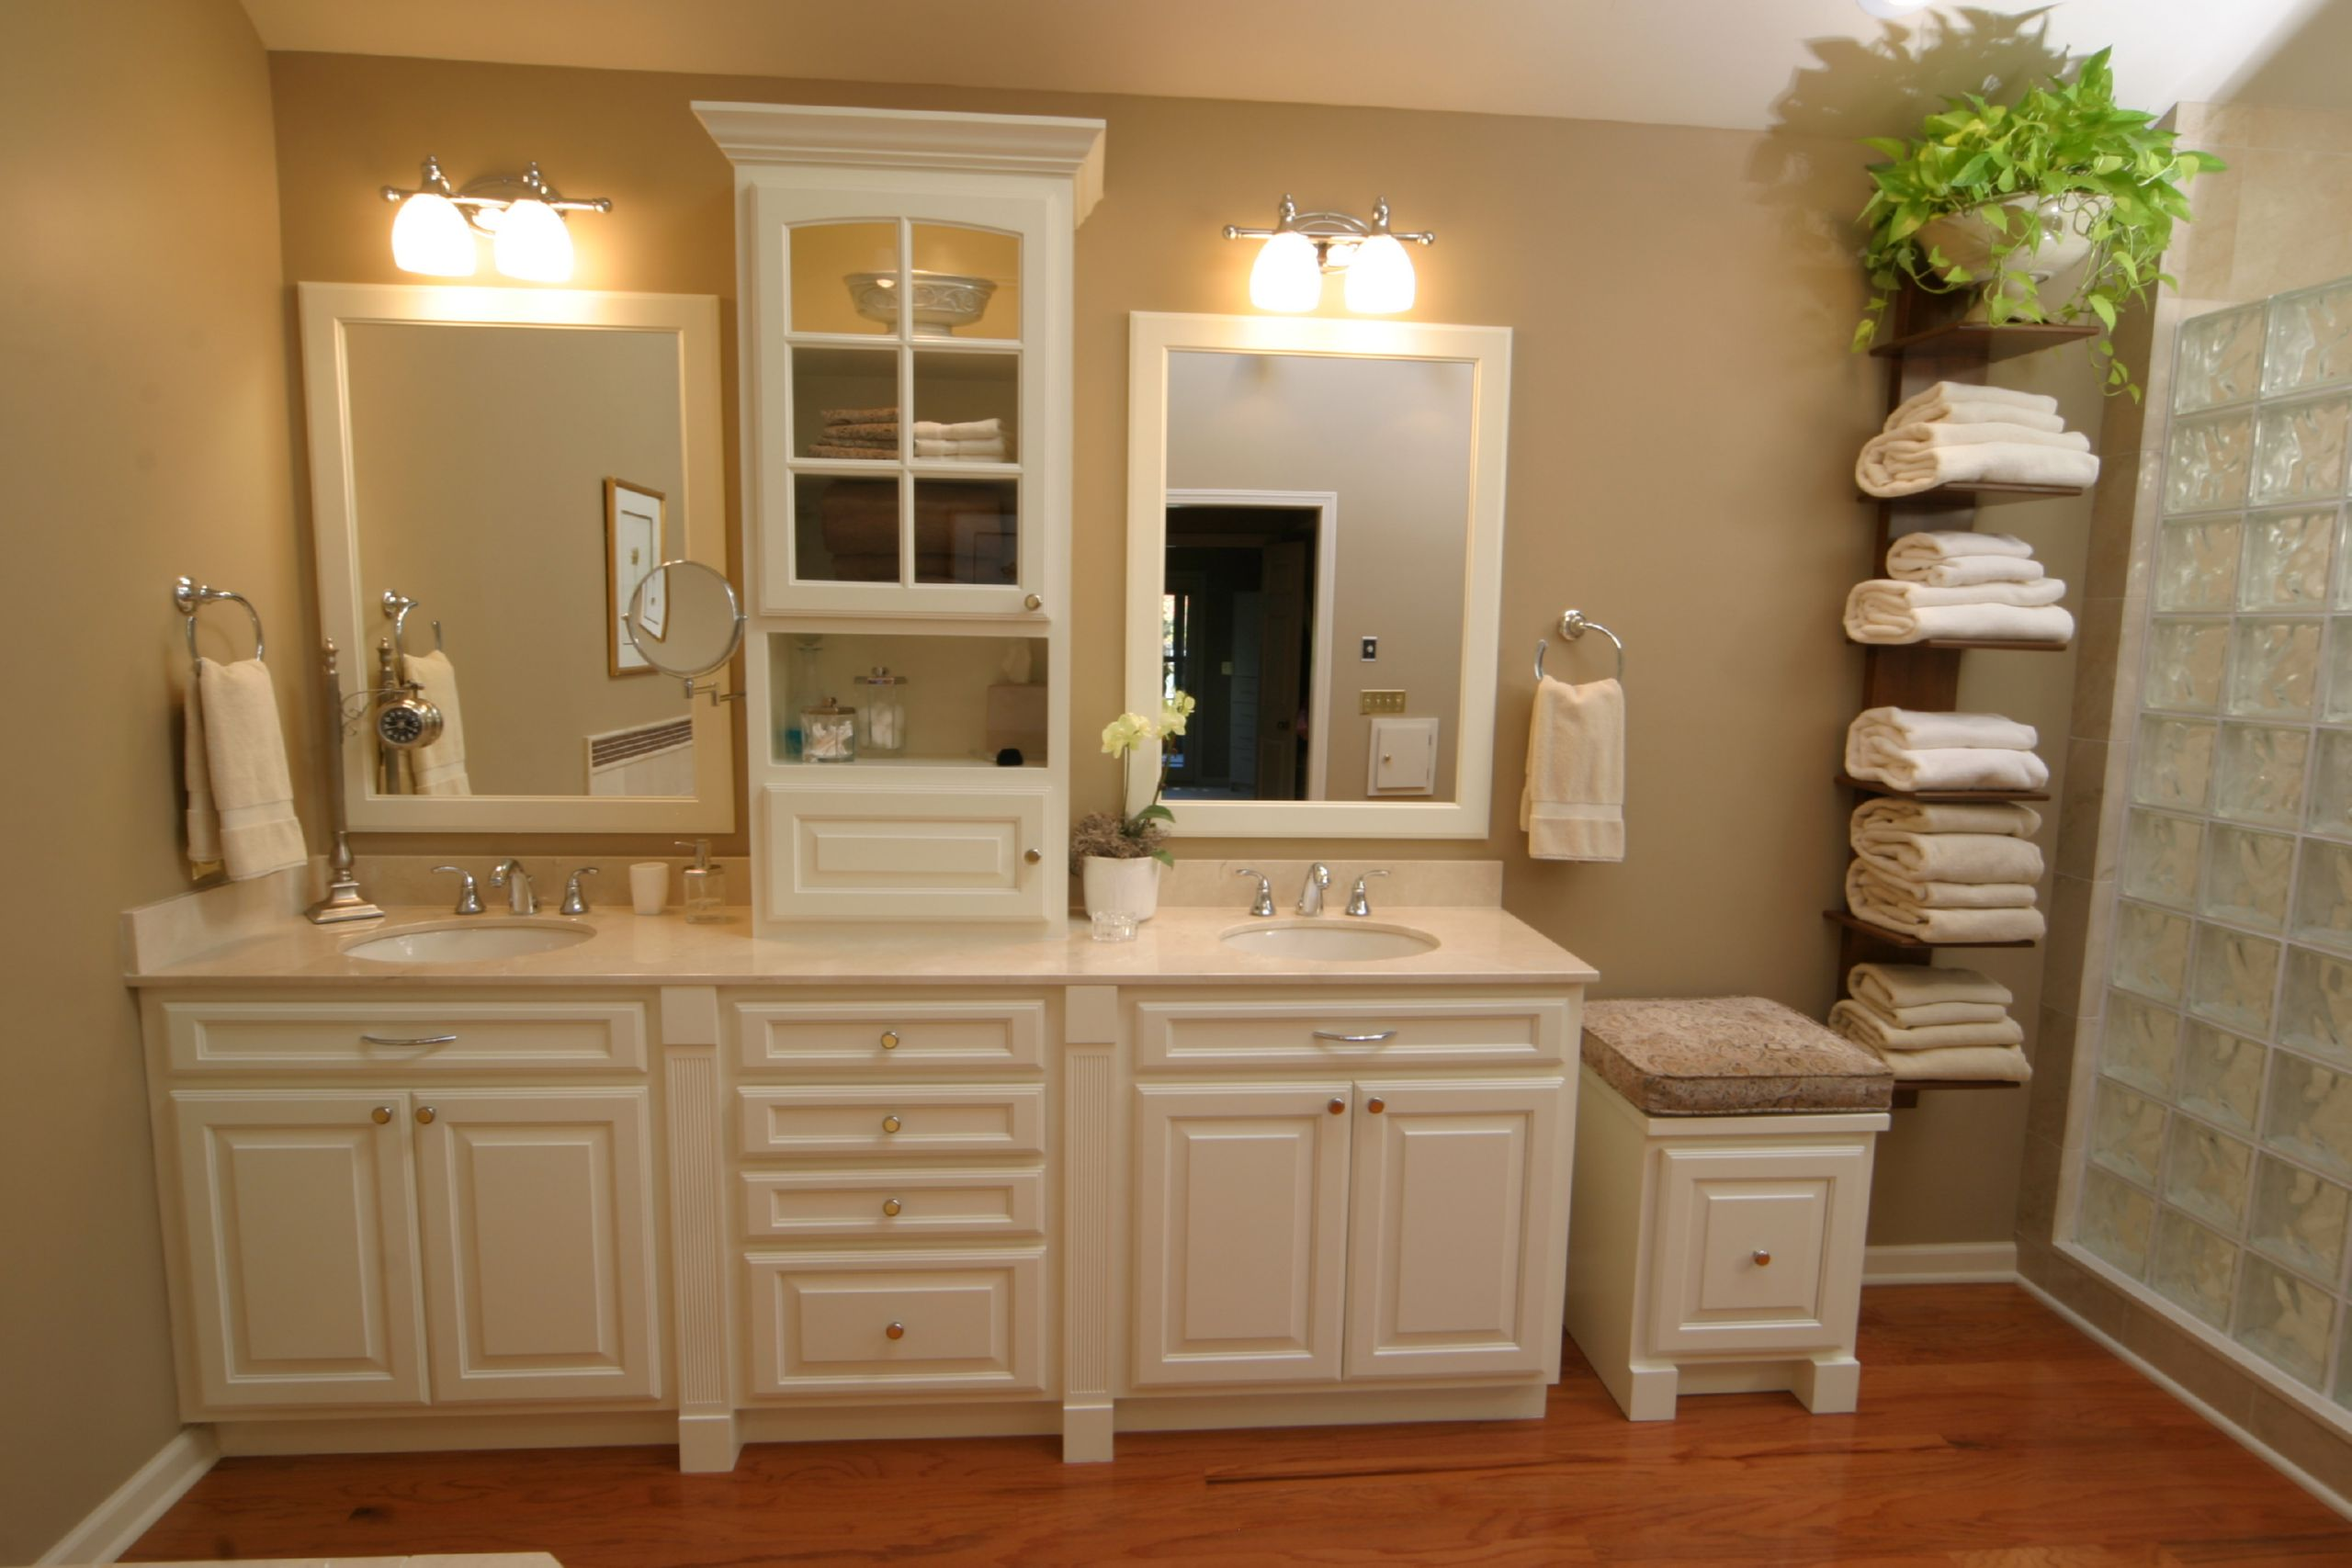 pics photos bathroom remodeling before and after bathroom remodels on a budget hgtv